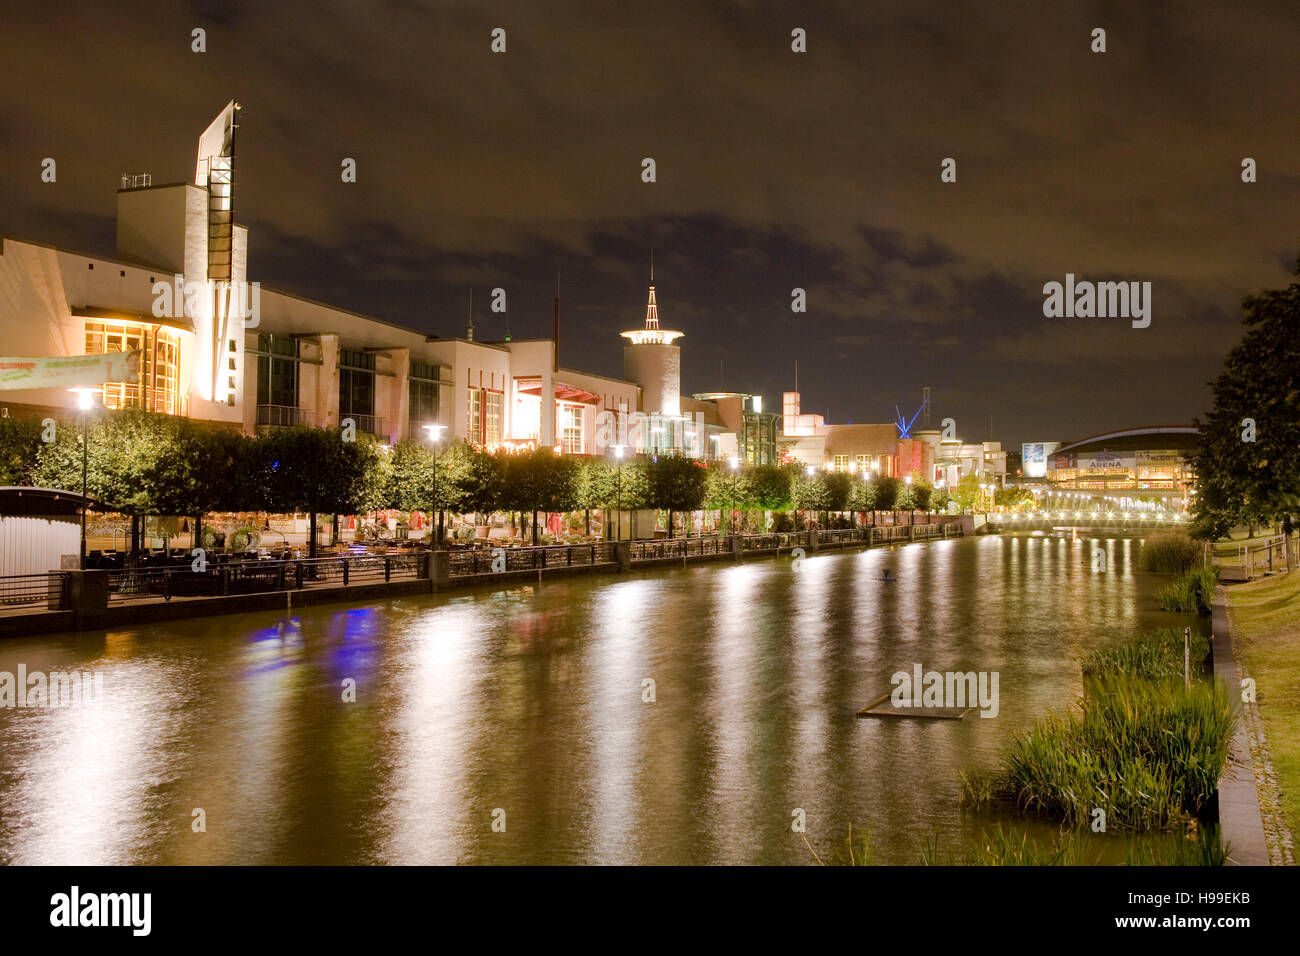 Germany,  Ruhr area, Oberhausen, the promenade at the shopping mall Centro in the district Neue Mitte. - Stock Image